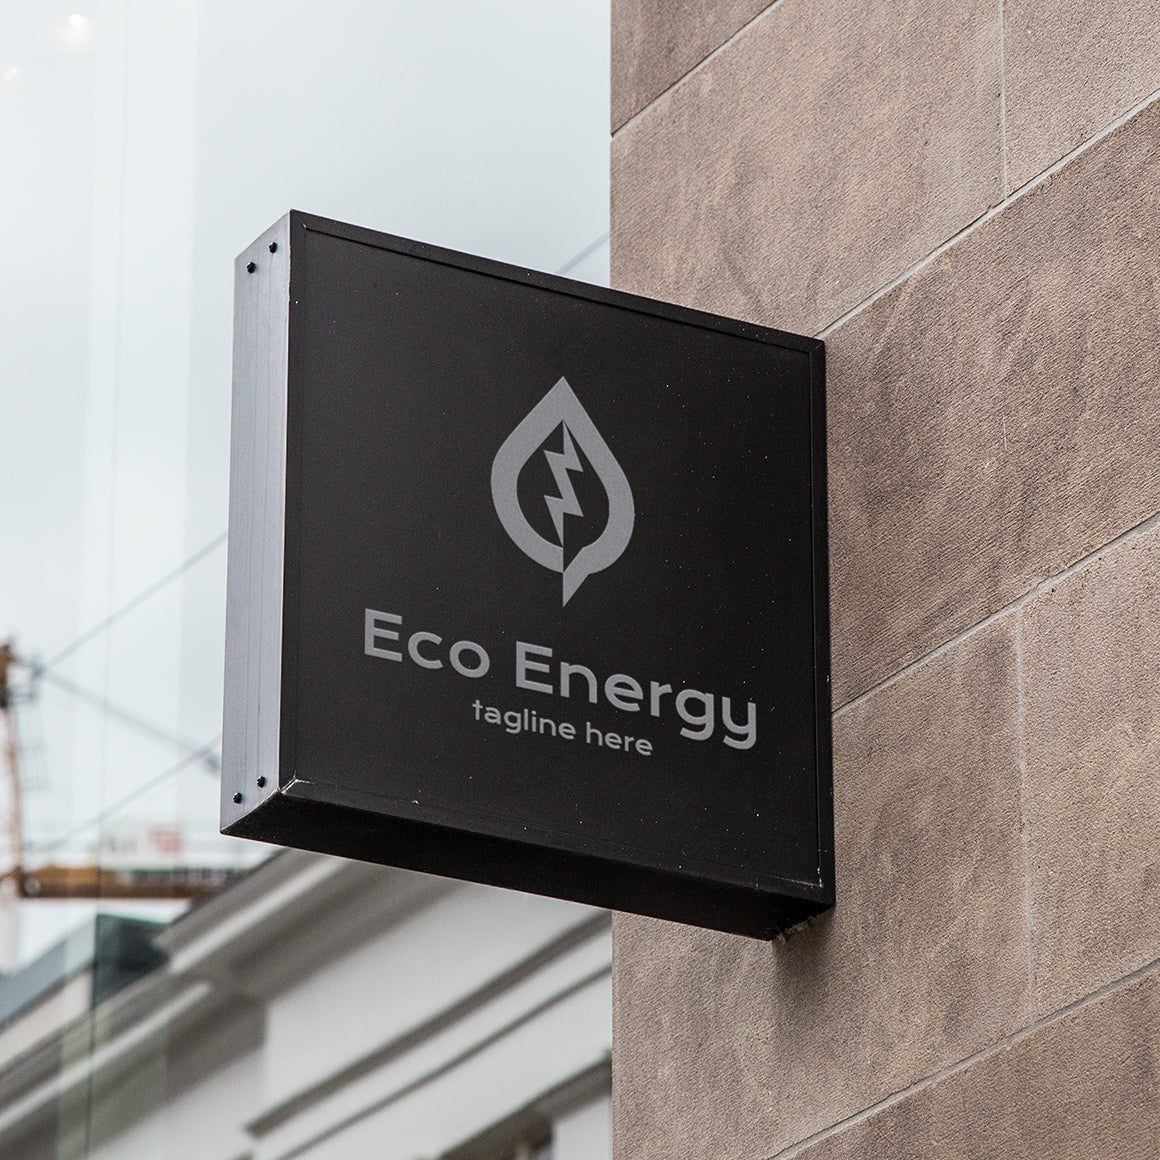 Eco energy logo